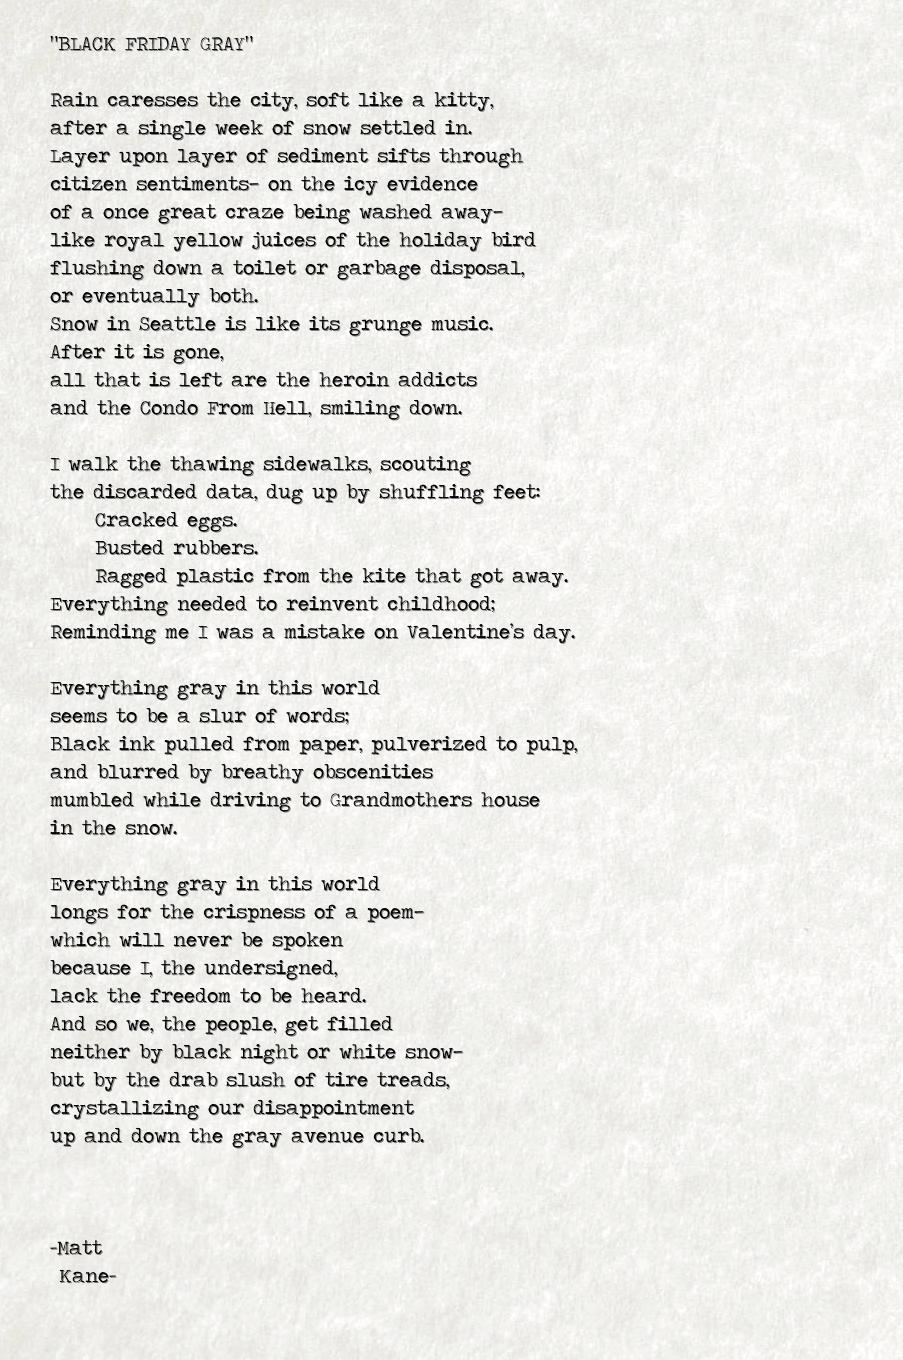 BLACK FRIDAY GRAY - a poem by Matt Kane